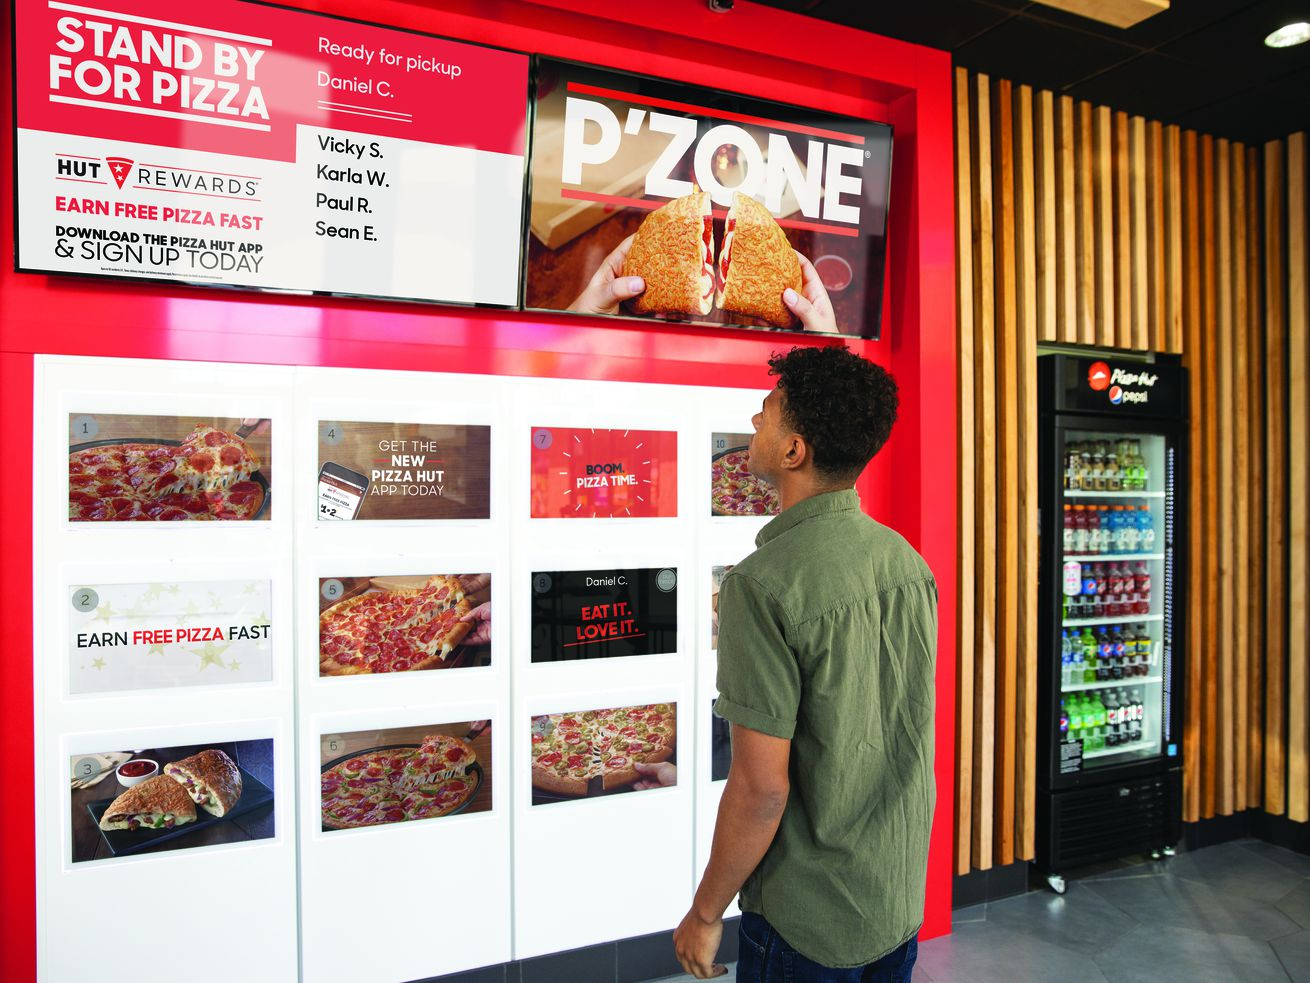 Pizza Hut Gets Into the Automat Business With New Pizza Lockers